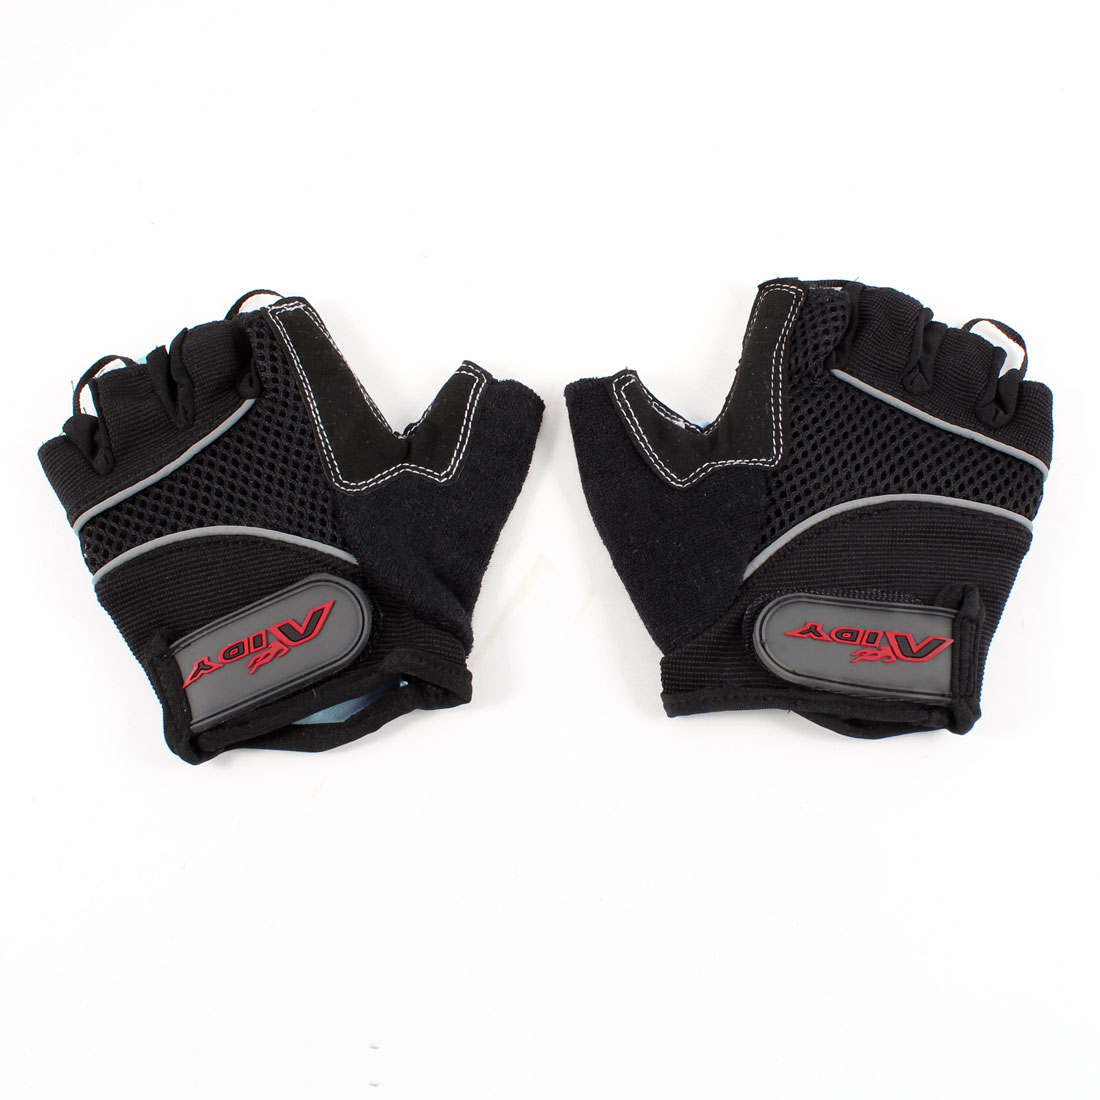 Pair Black Half Finger Skidproof Breathable Sports Racing Gloves